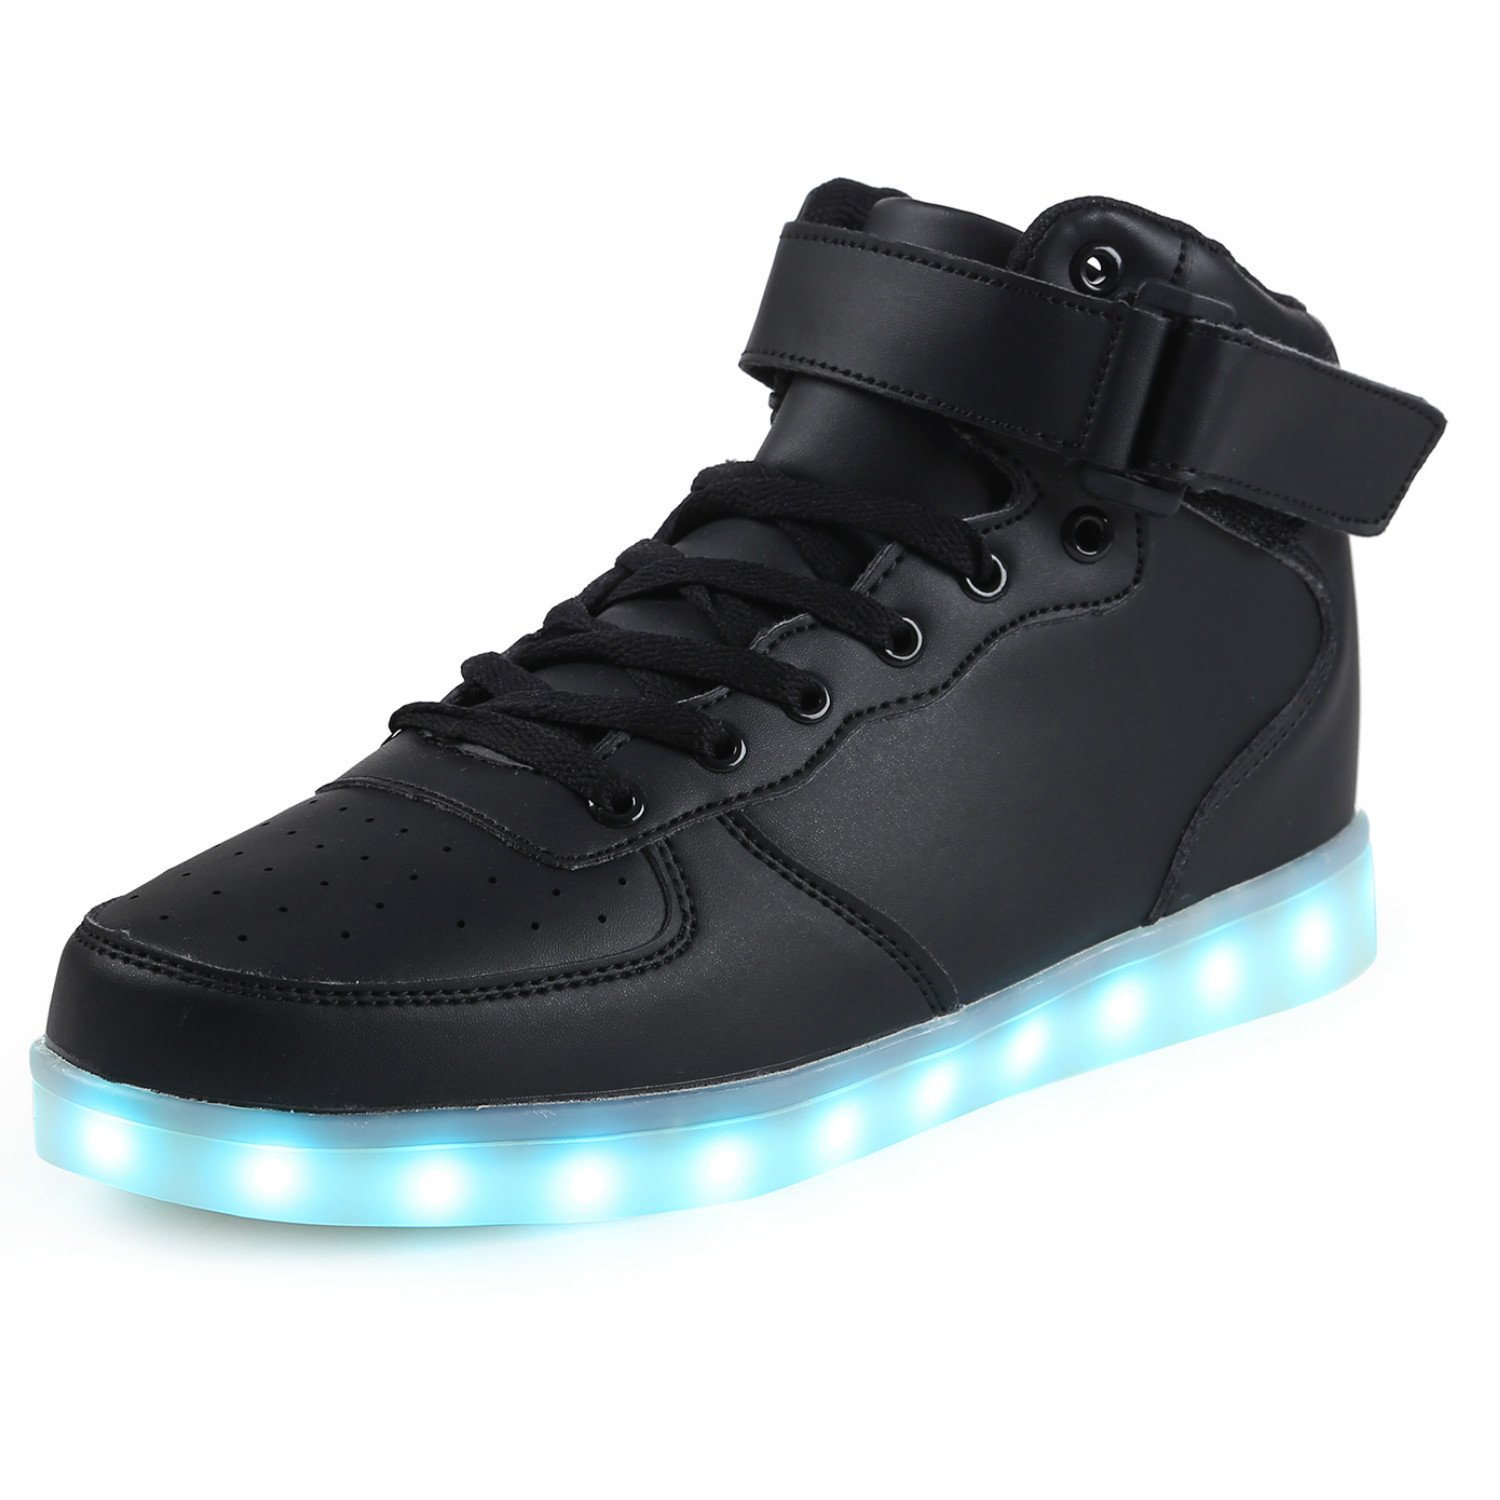 Topteck Mens High Tops Light up Shoes Funny Male LED Flashing Sneakers with Lights Adult Tennis Boots, Black